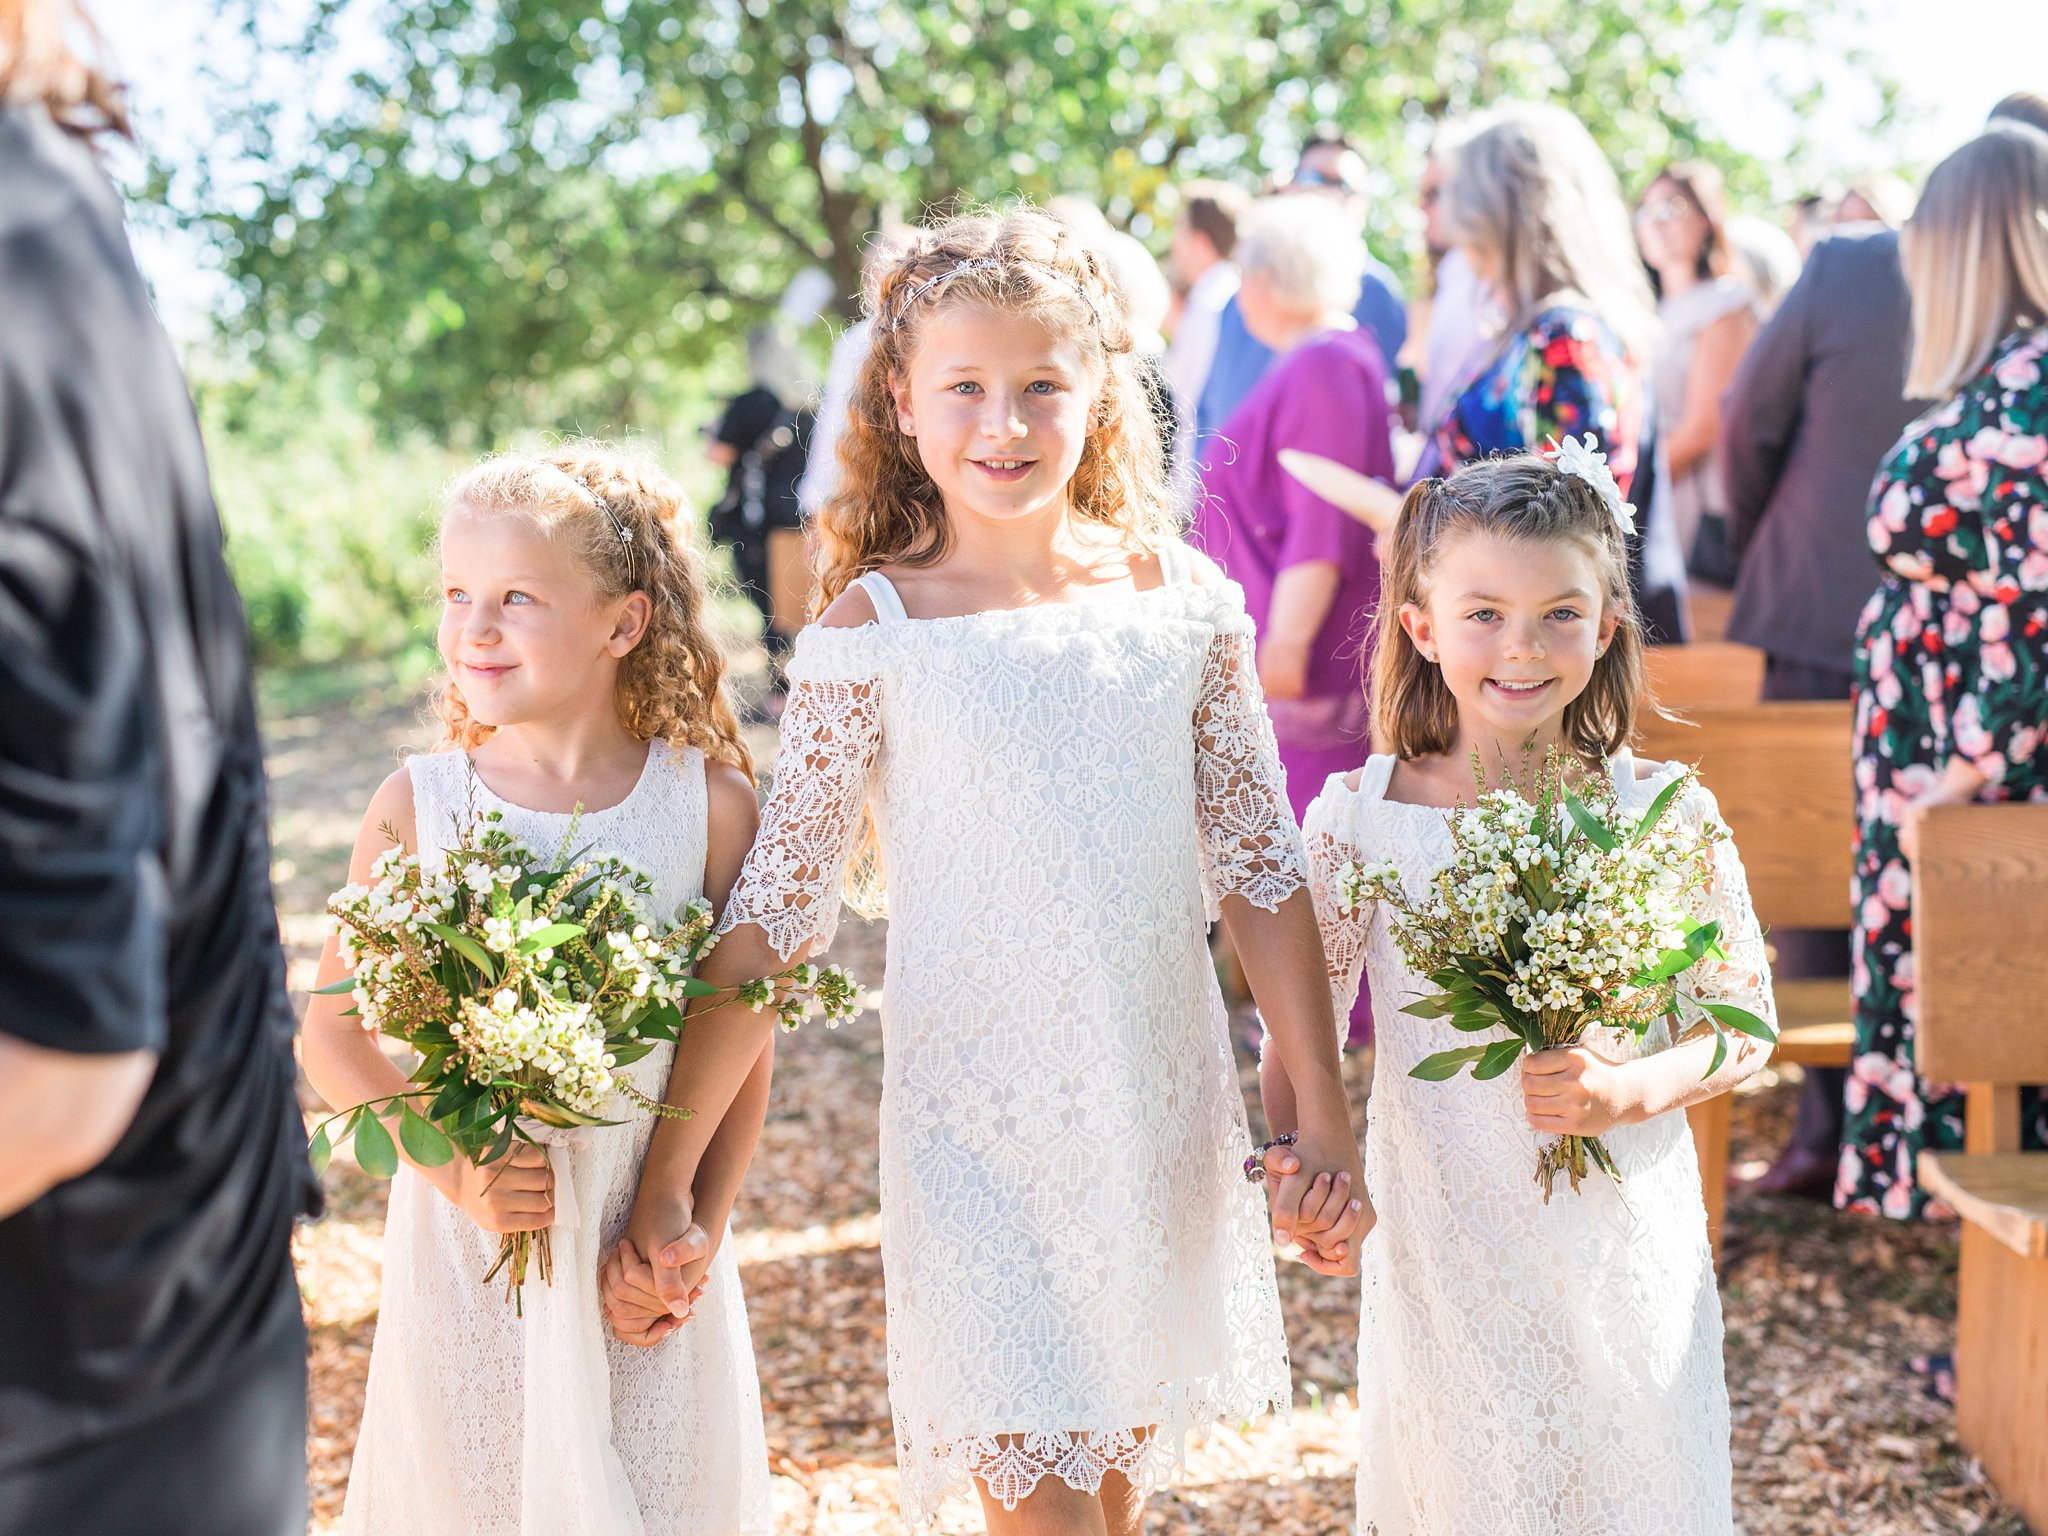 Flower girls, white dresses, bouquet, Private Estate Wedding Photos, Amy Pinder Photography